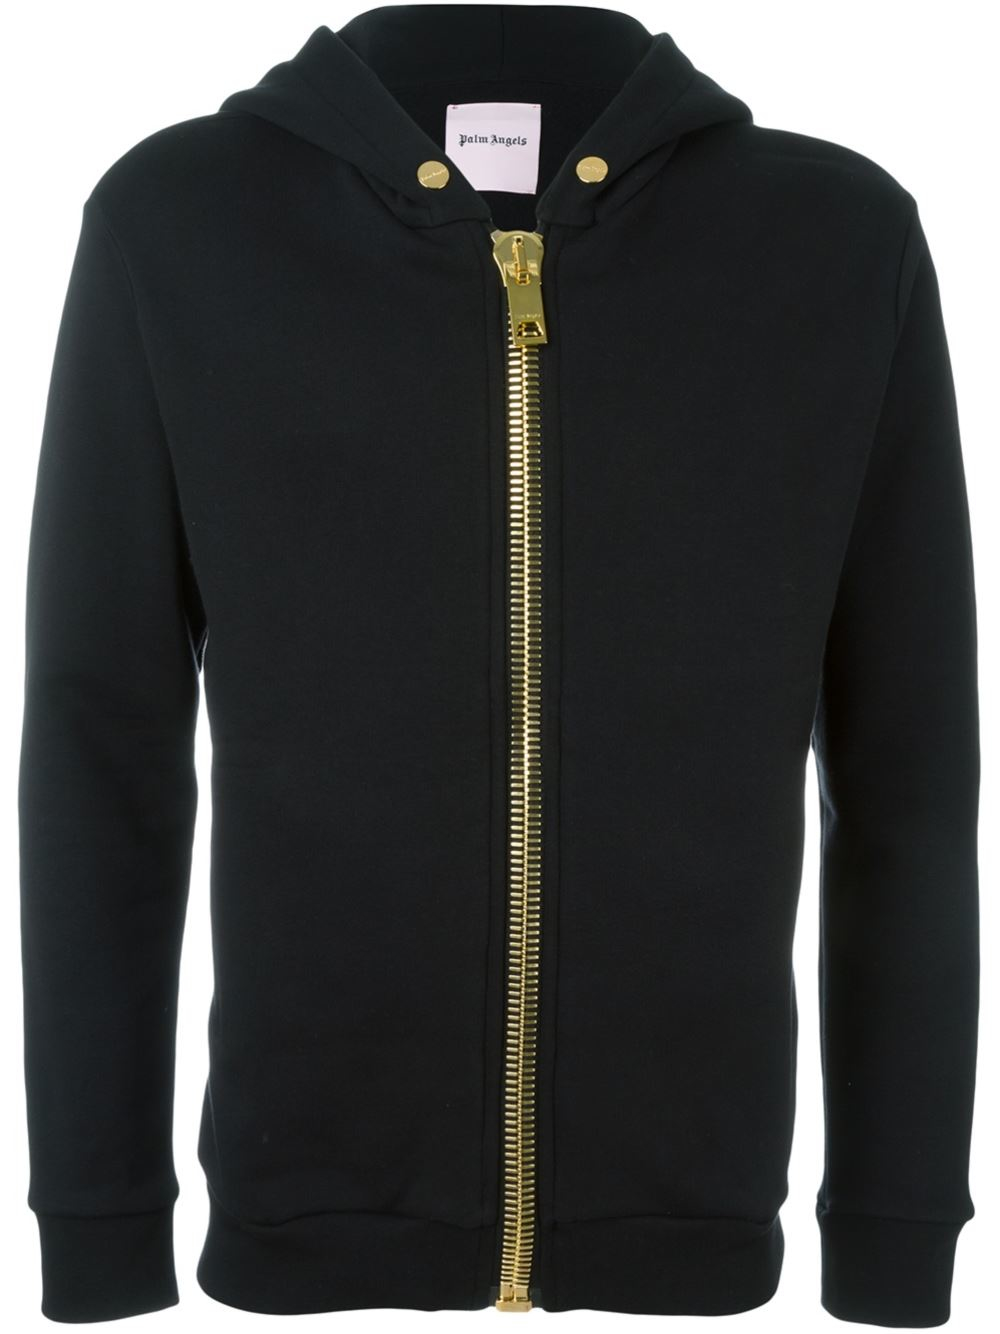 Lyst Palm Angels Zipped Hoodie In Black For Men